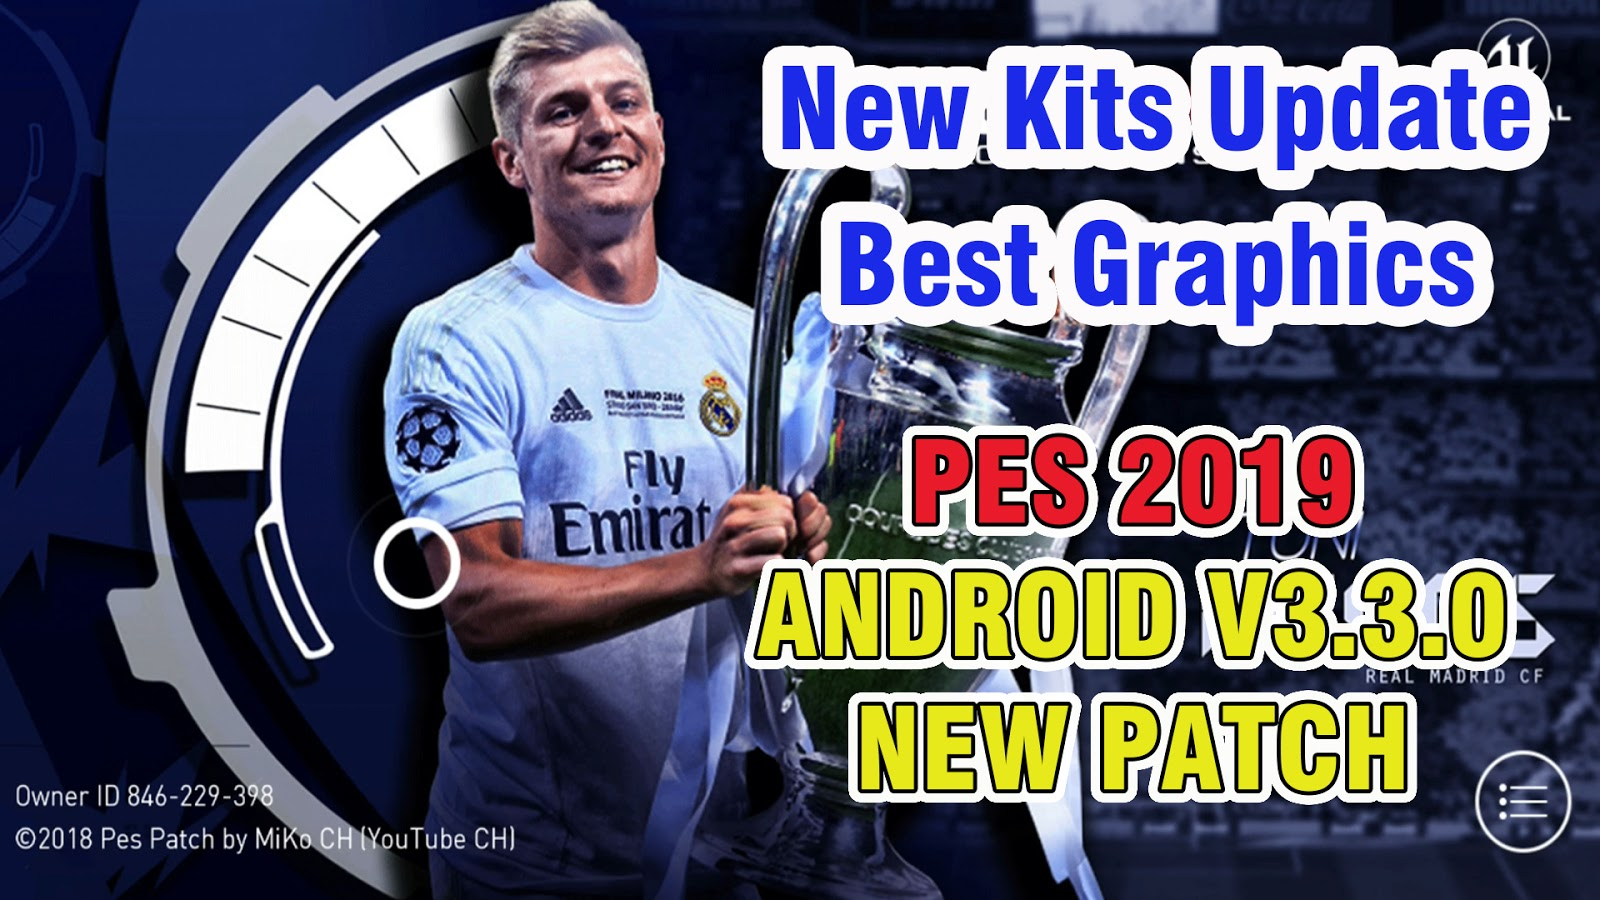 e2dd6e1c6 PES 2019 Mobile Patch V3.3.0 Android Offline New Kits Update Best Graphics  - Mod